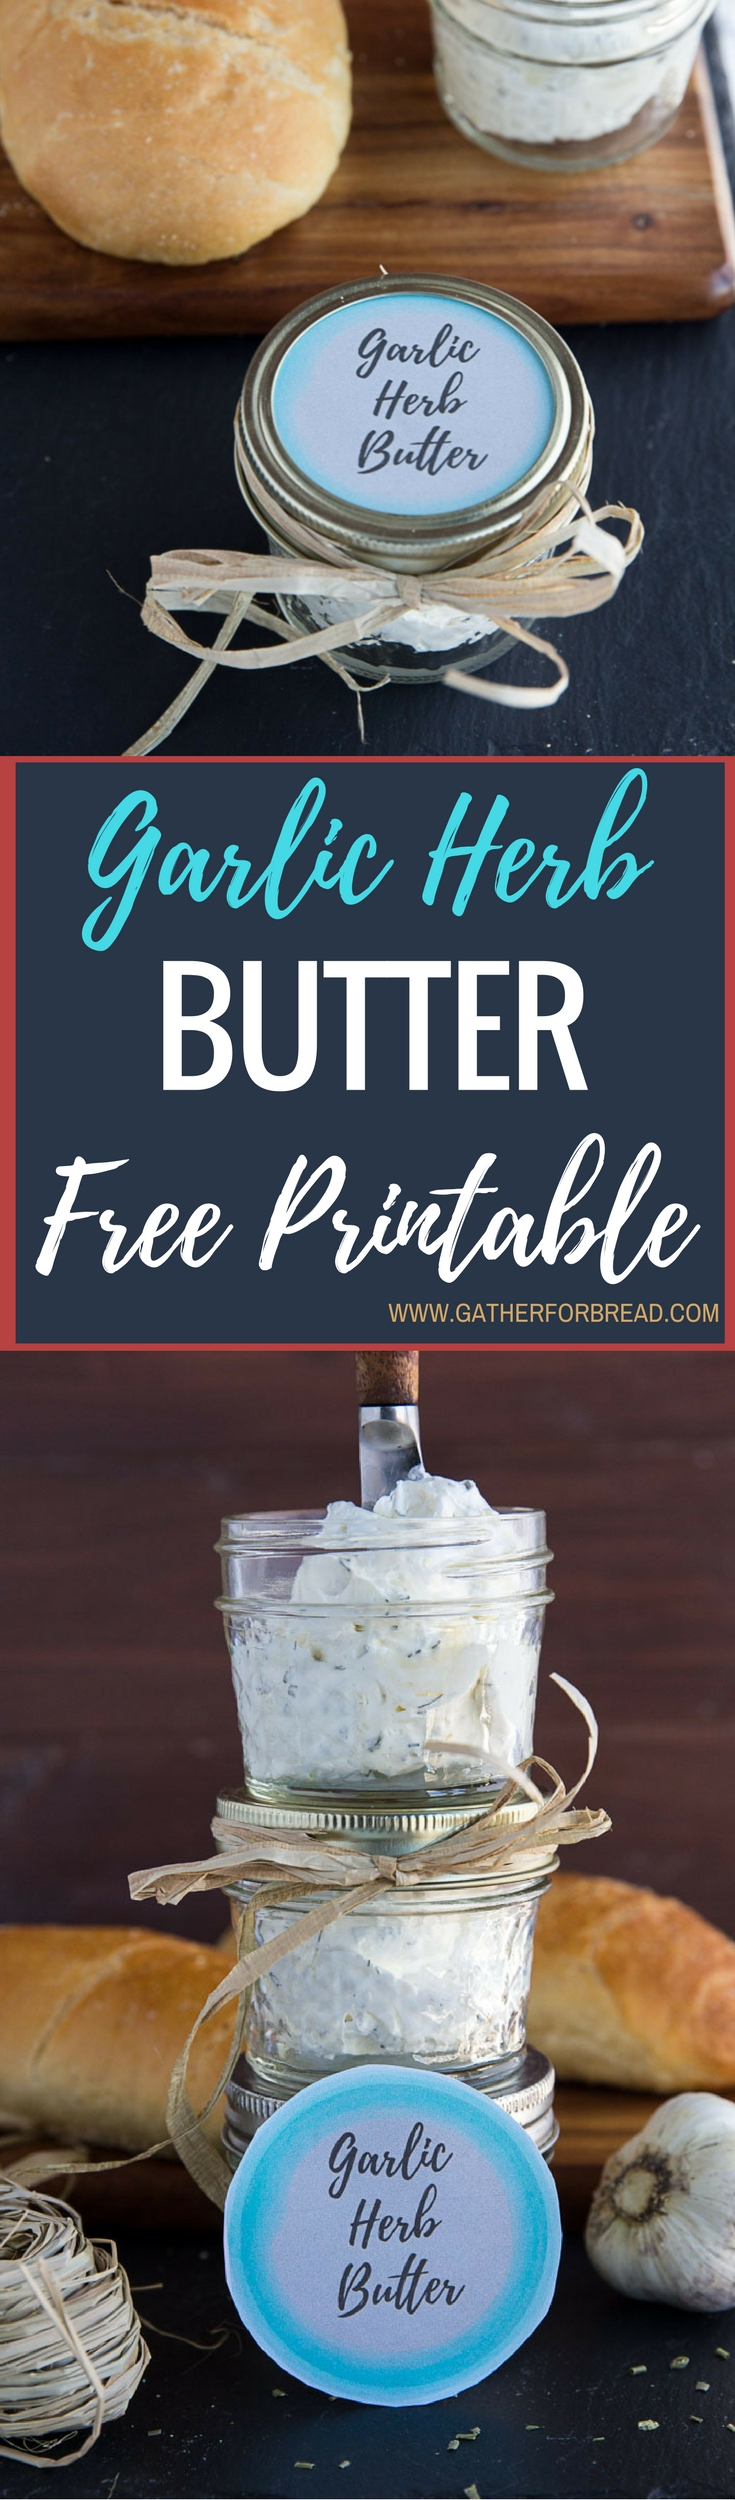 Garlic Herb Butter with Free Mason Jar Printable Label